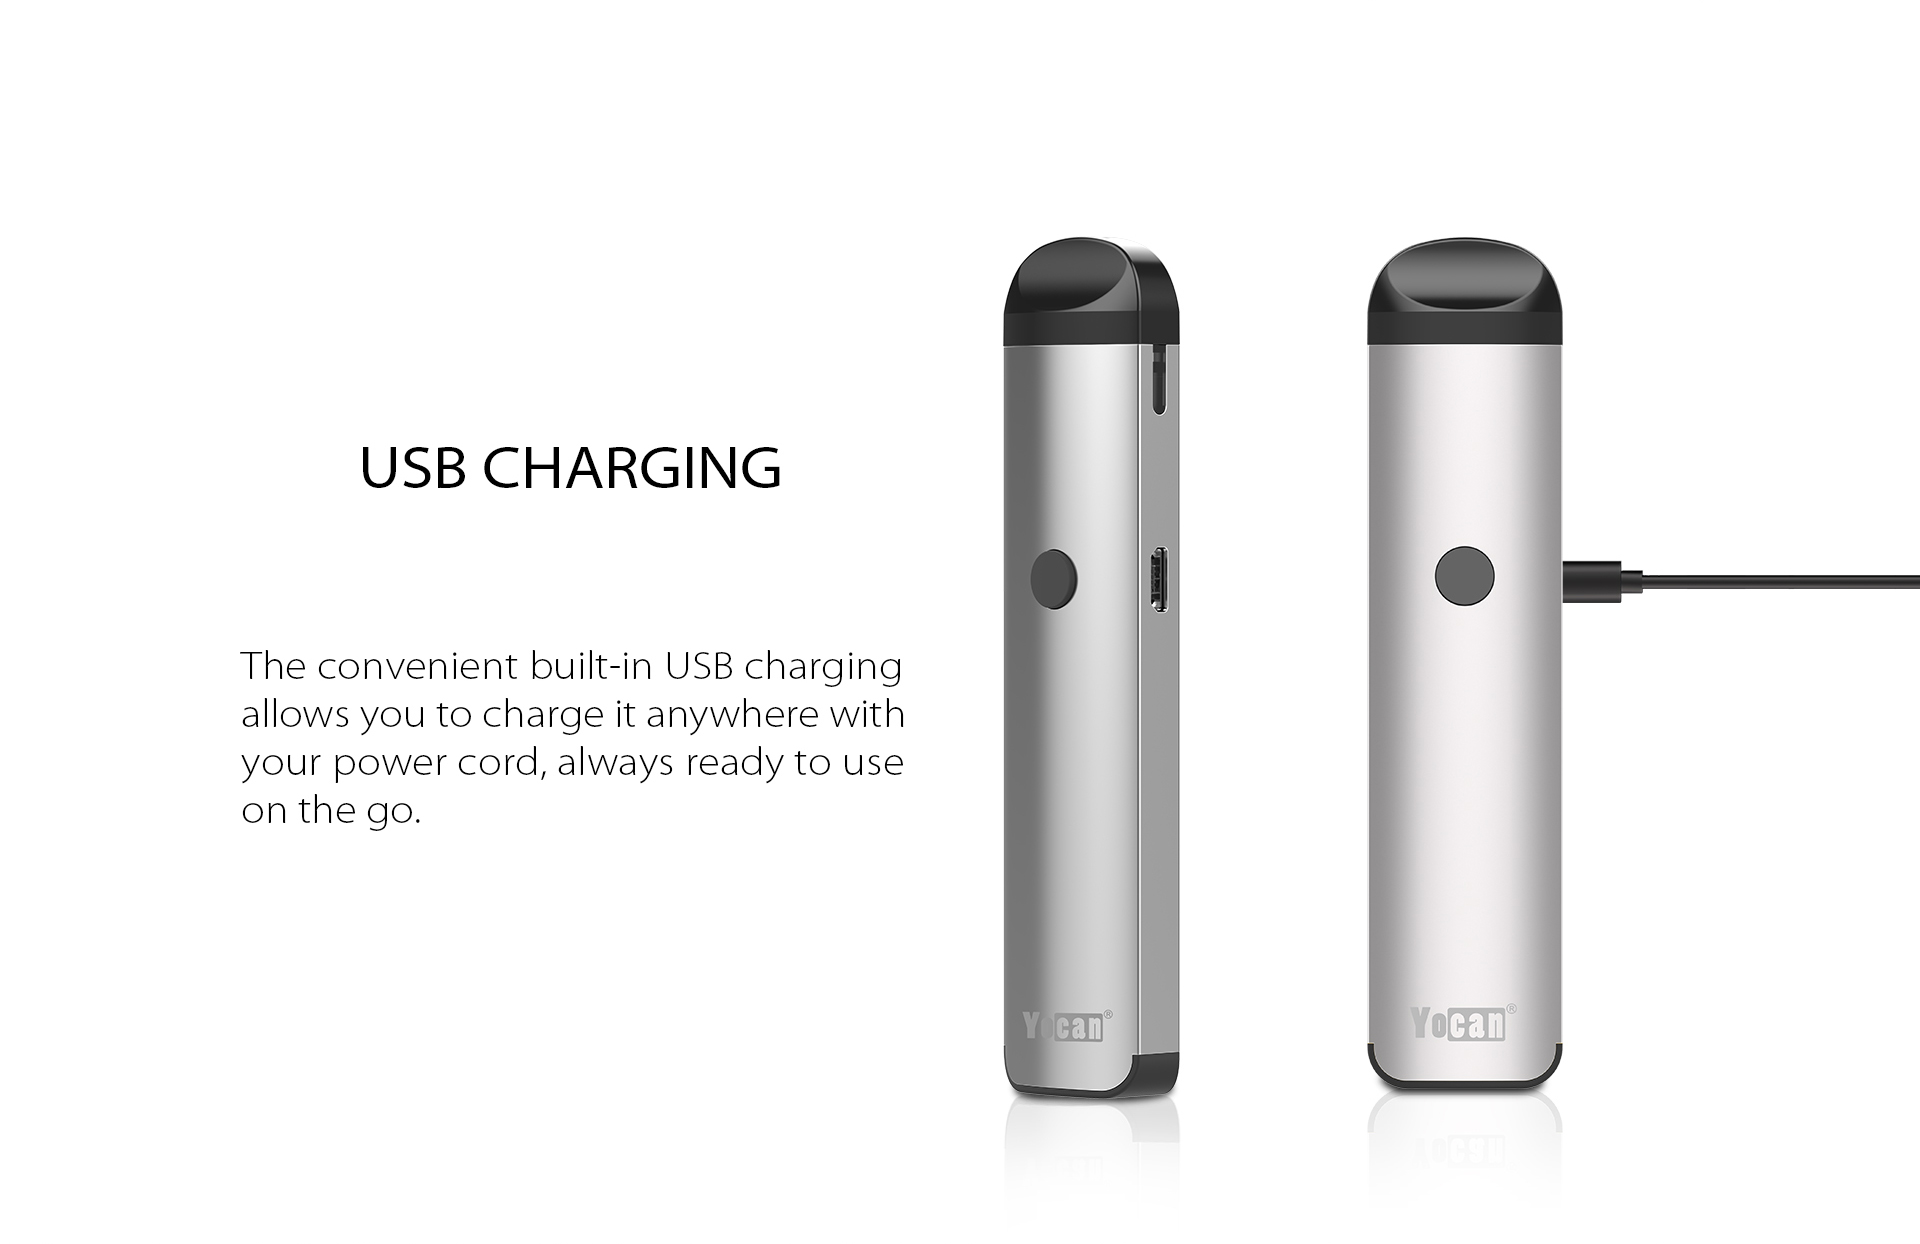 Yocan Evolve 2.0 features the convenient built-in USB Charging